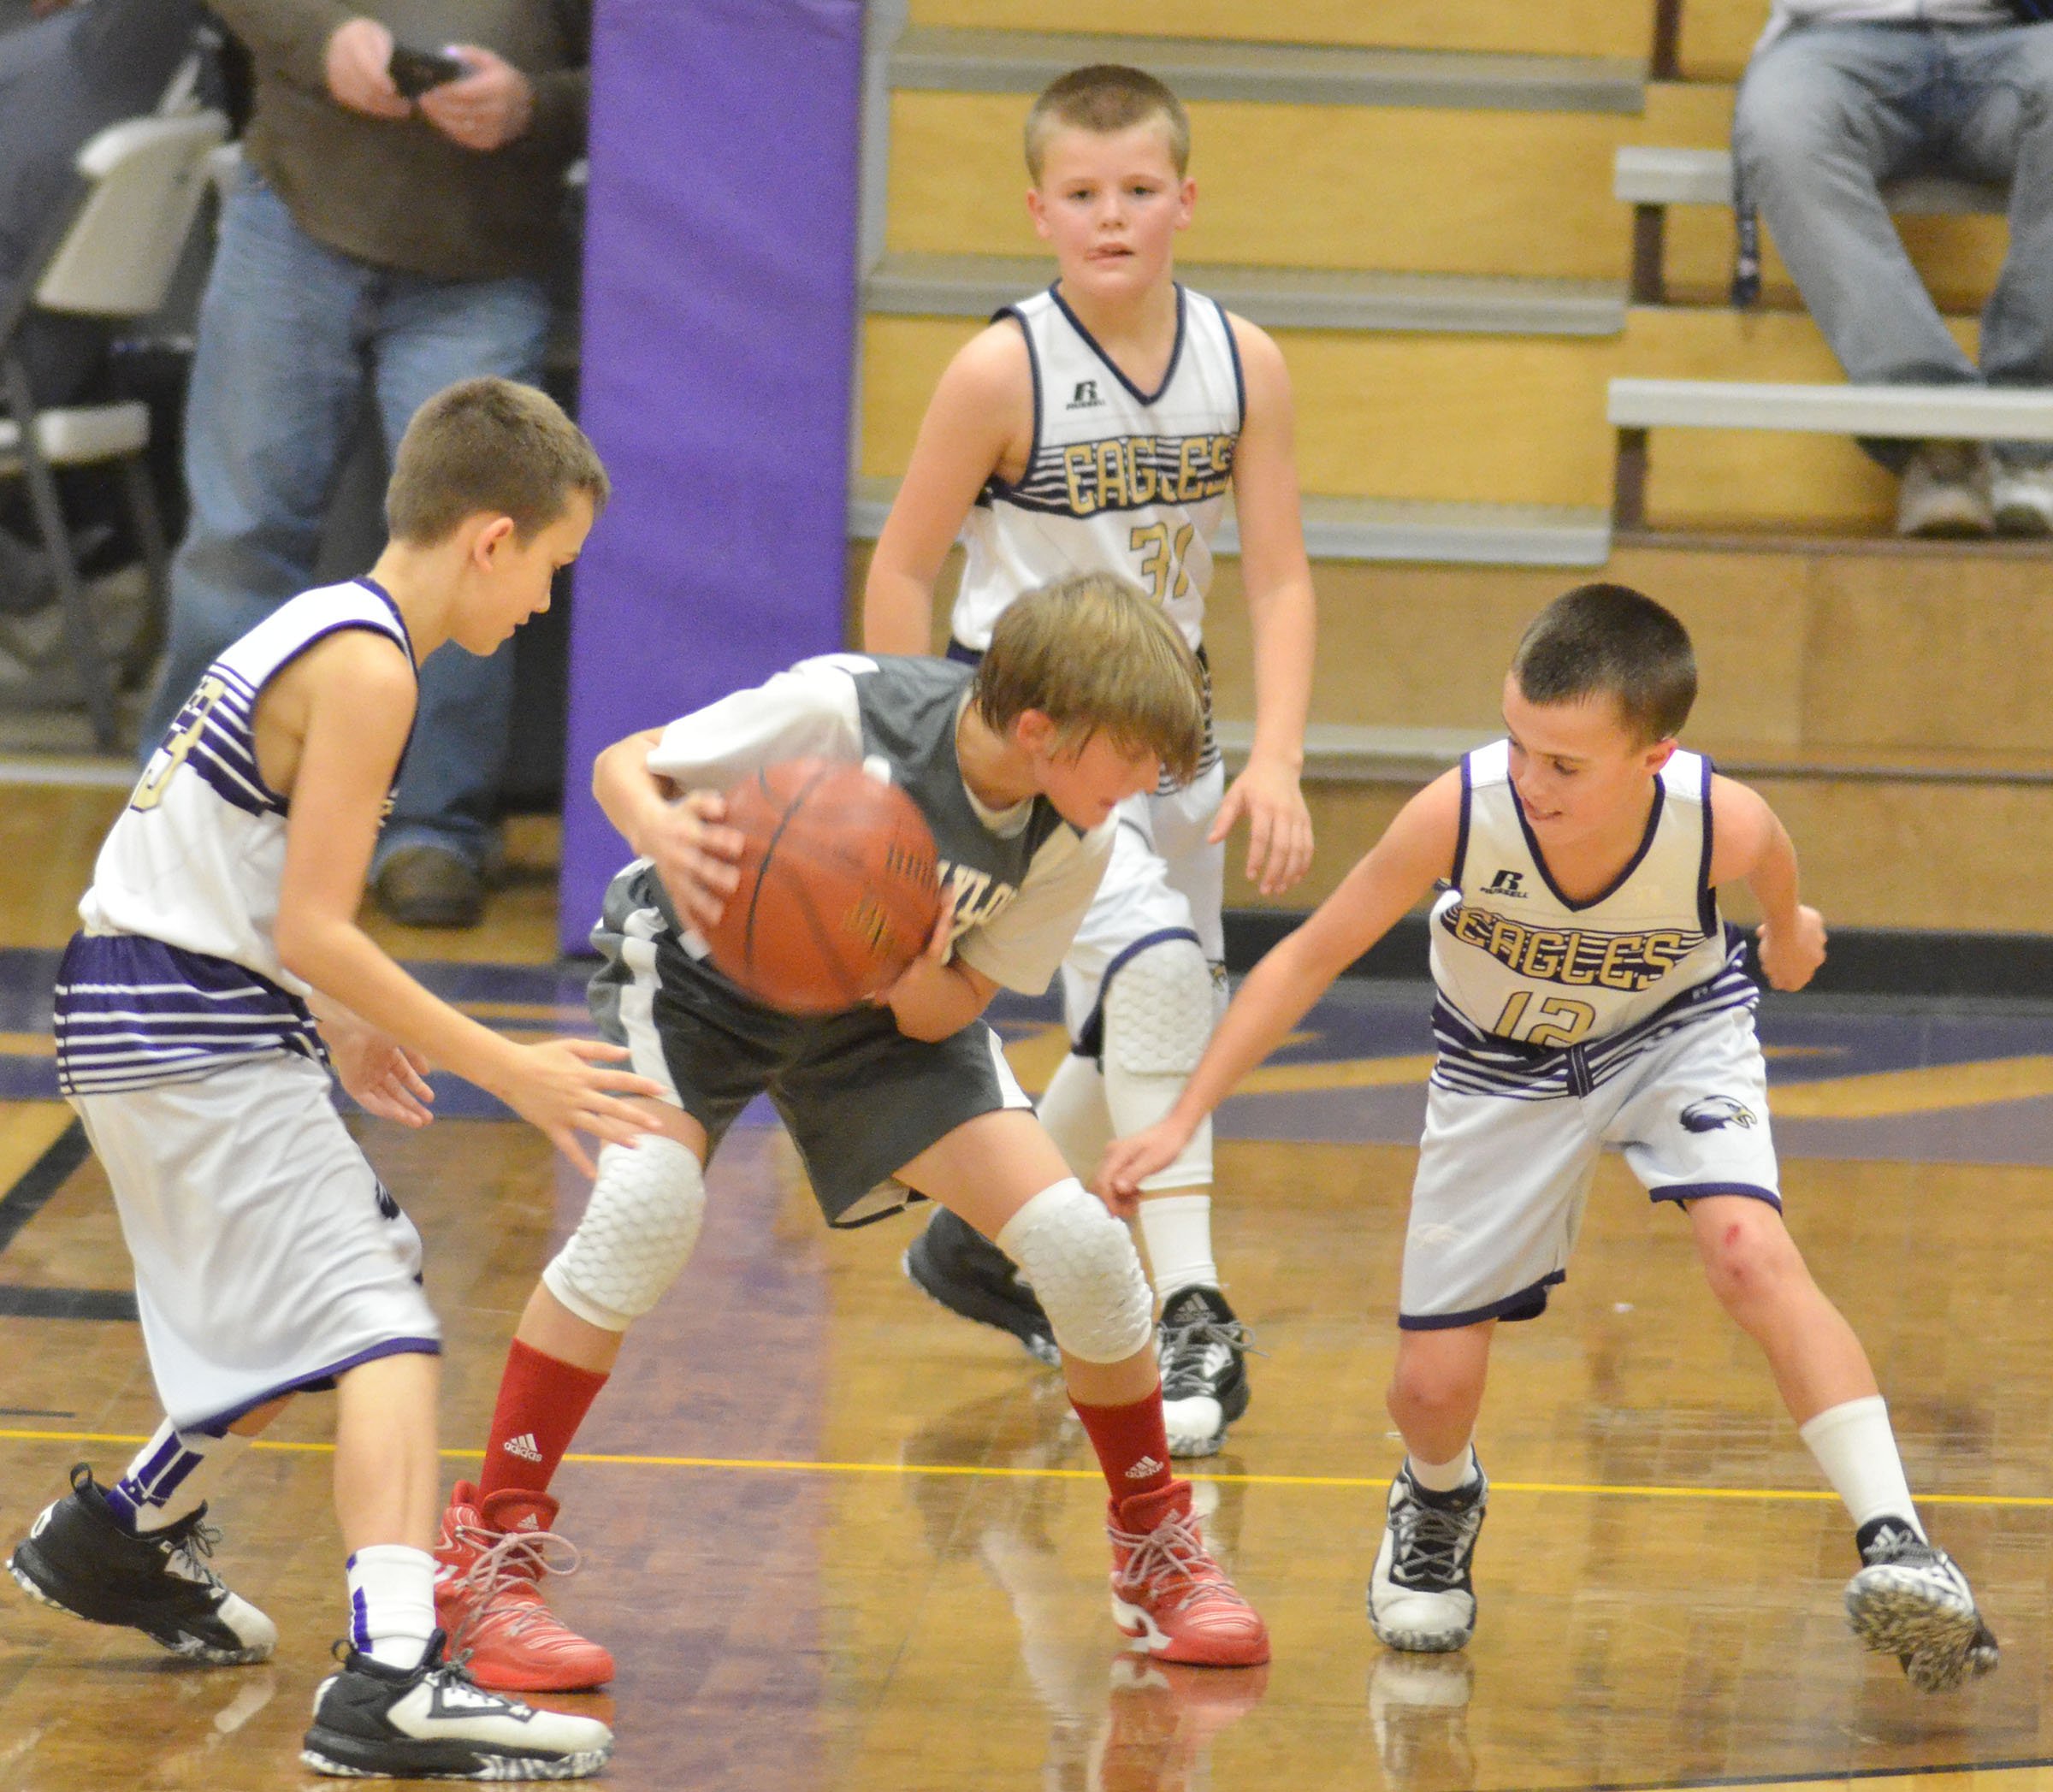 CMS sixth-graders, from left, Camren Vicari, Konner Forbis and Chase Hord play defense.